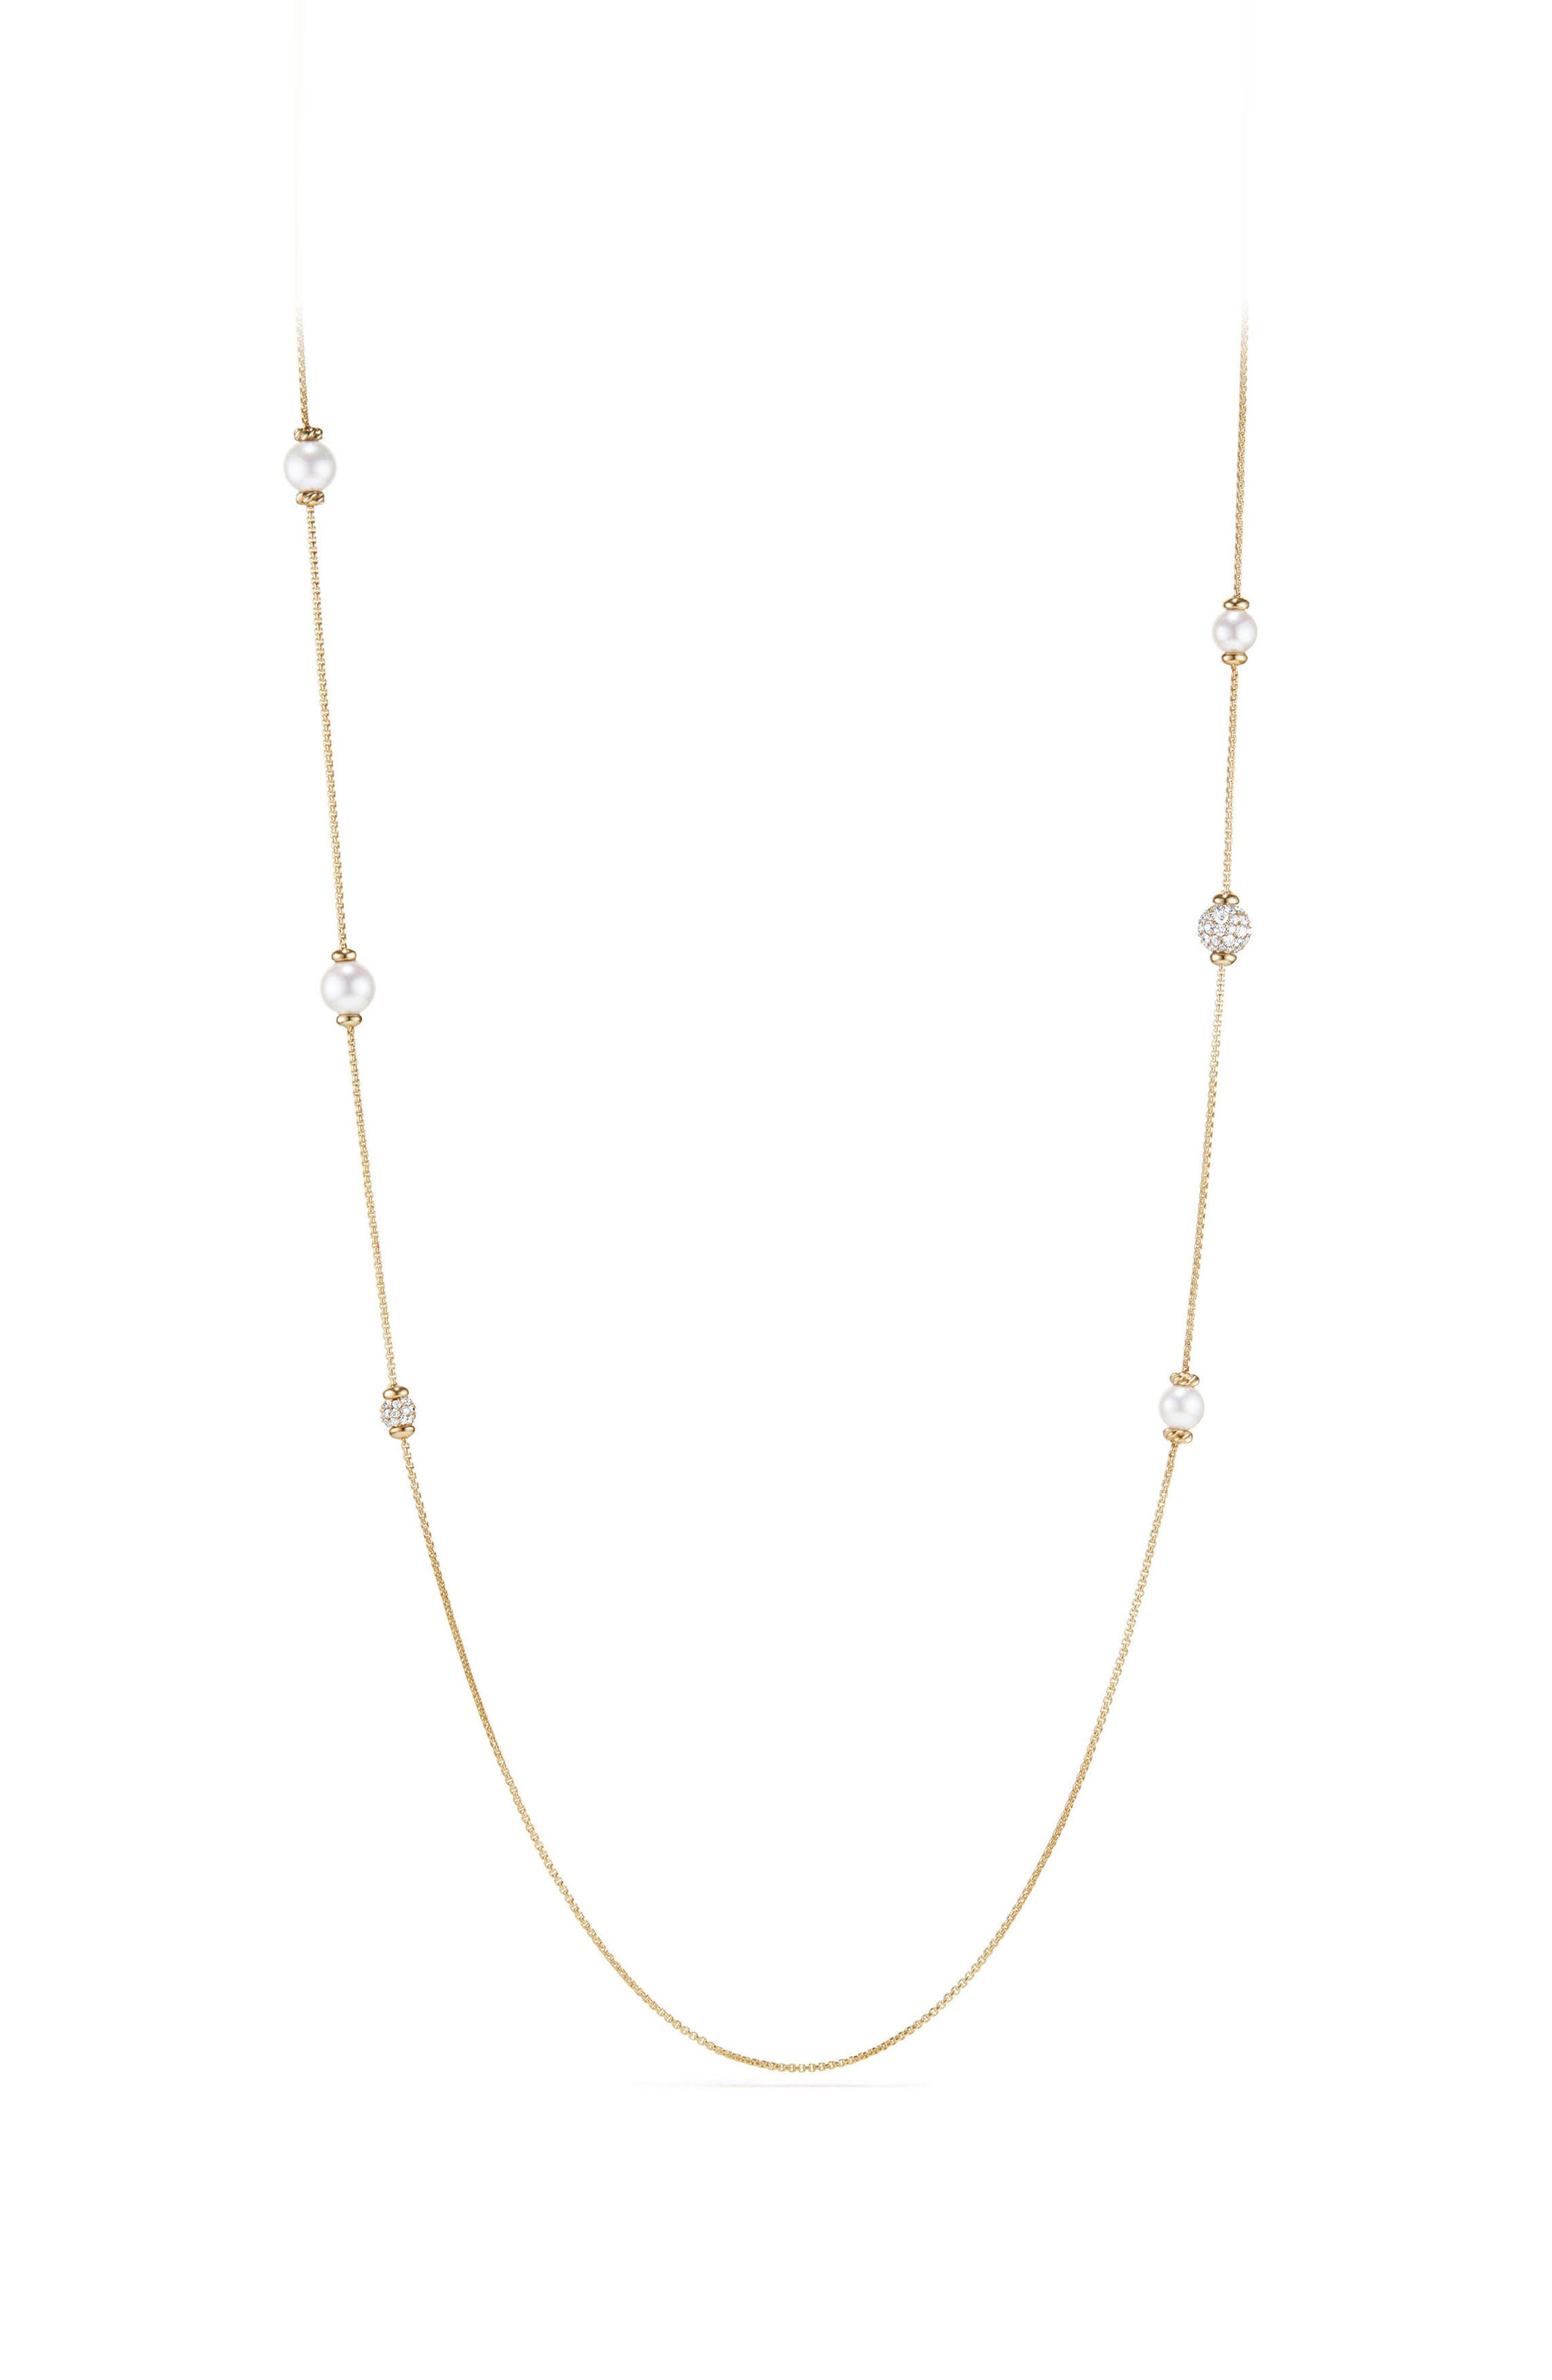 Solari Long Station Necklace with Pearls & Diamonds in 18K Yellow Gold,                             Main thumbnail 1, color,                             Yellow Gold/ Diamond/ Pearl